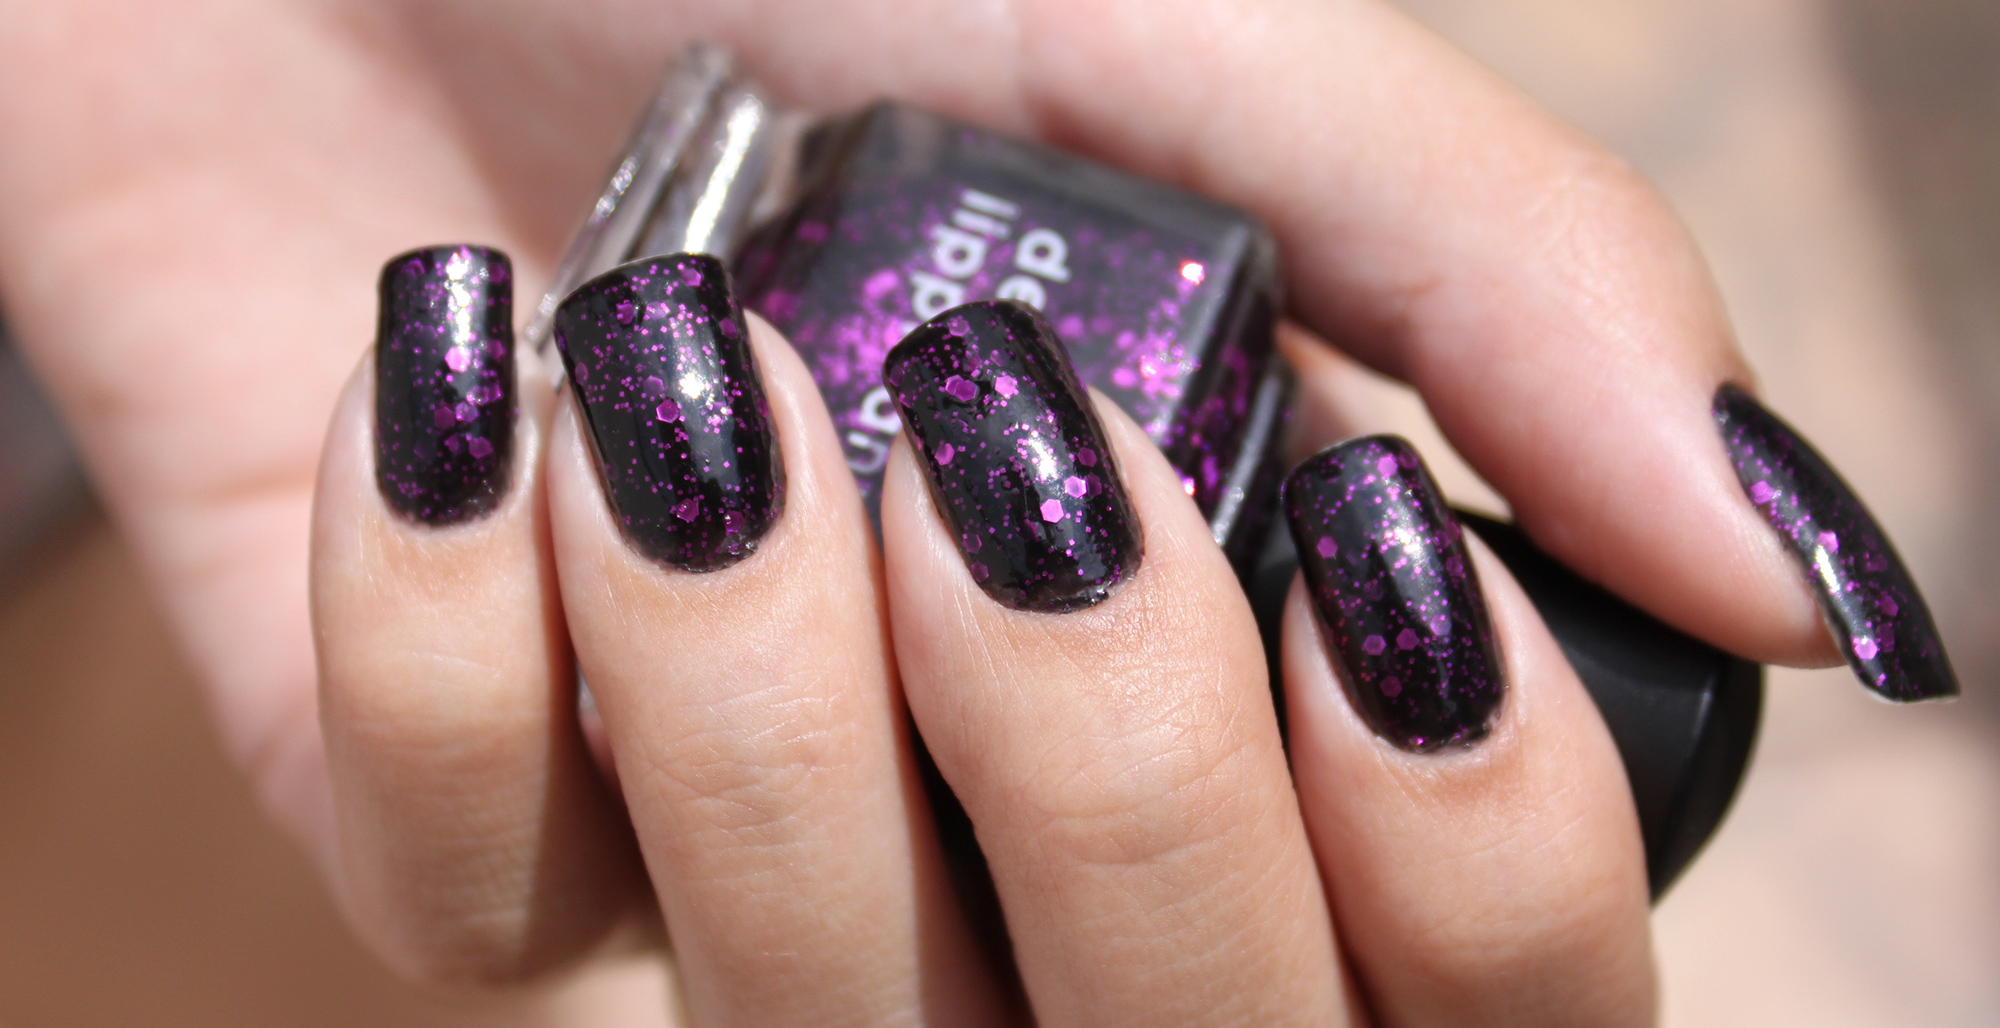 The Art of Nail Art: Five Fall Colors to Add to Your Nail Polish Collection